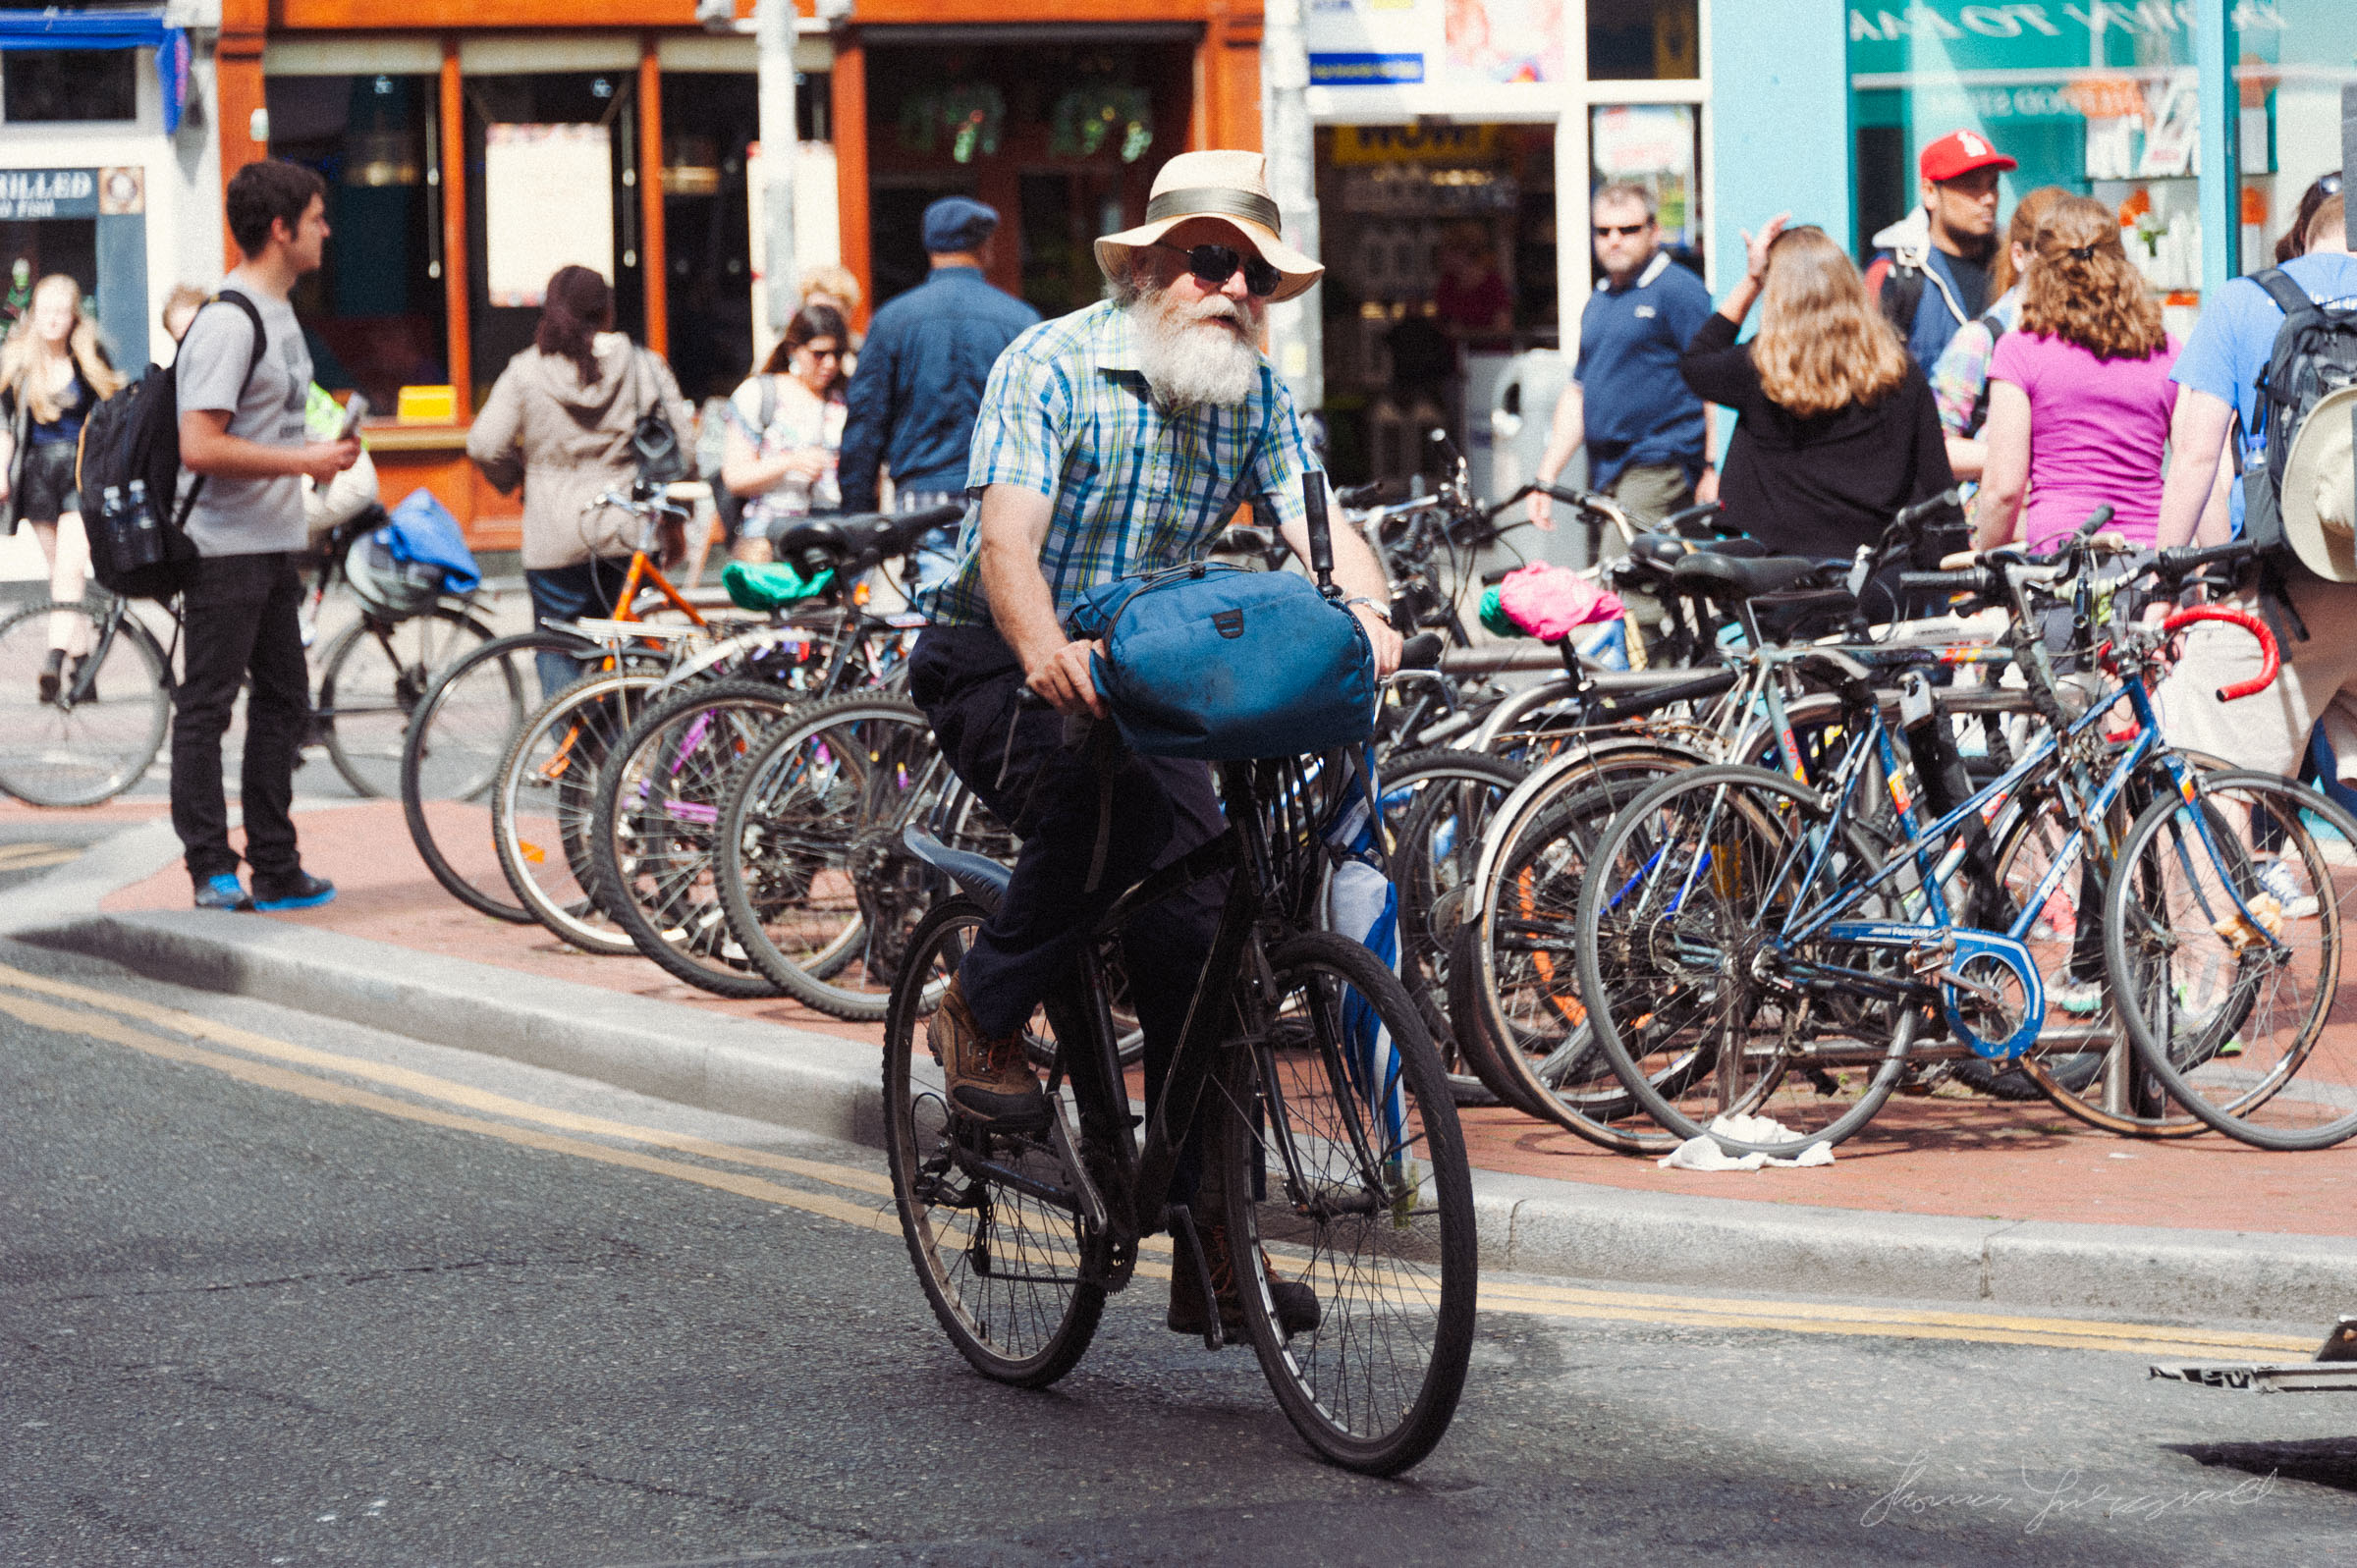 Bycycle Riding in Dublin